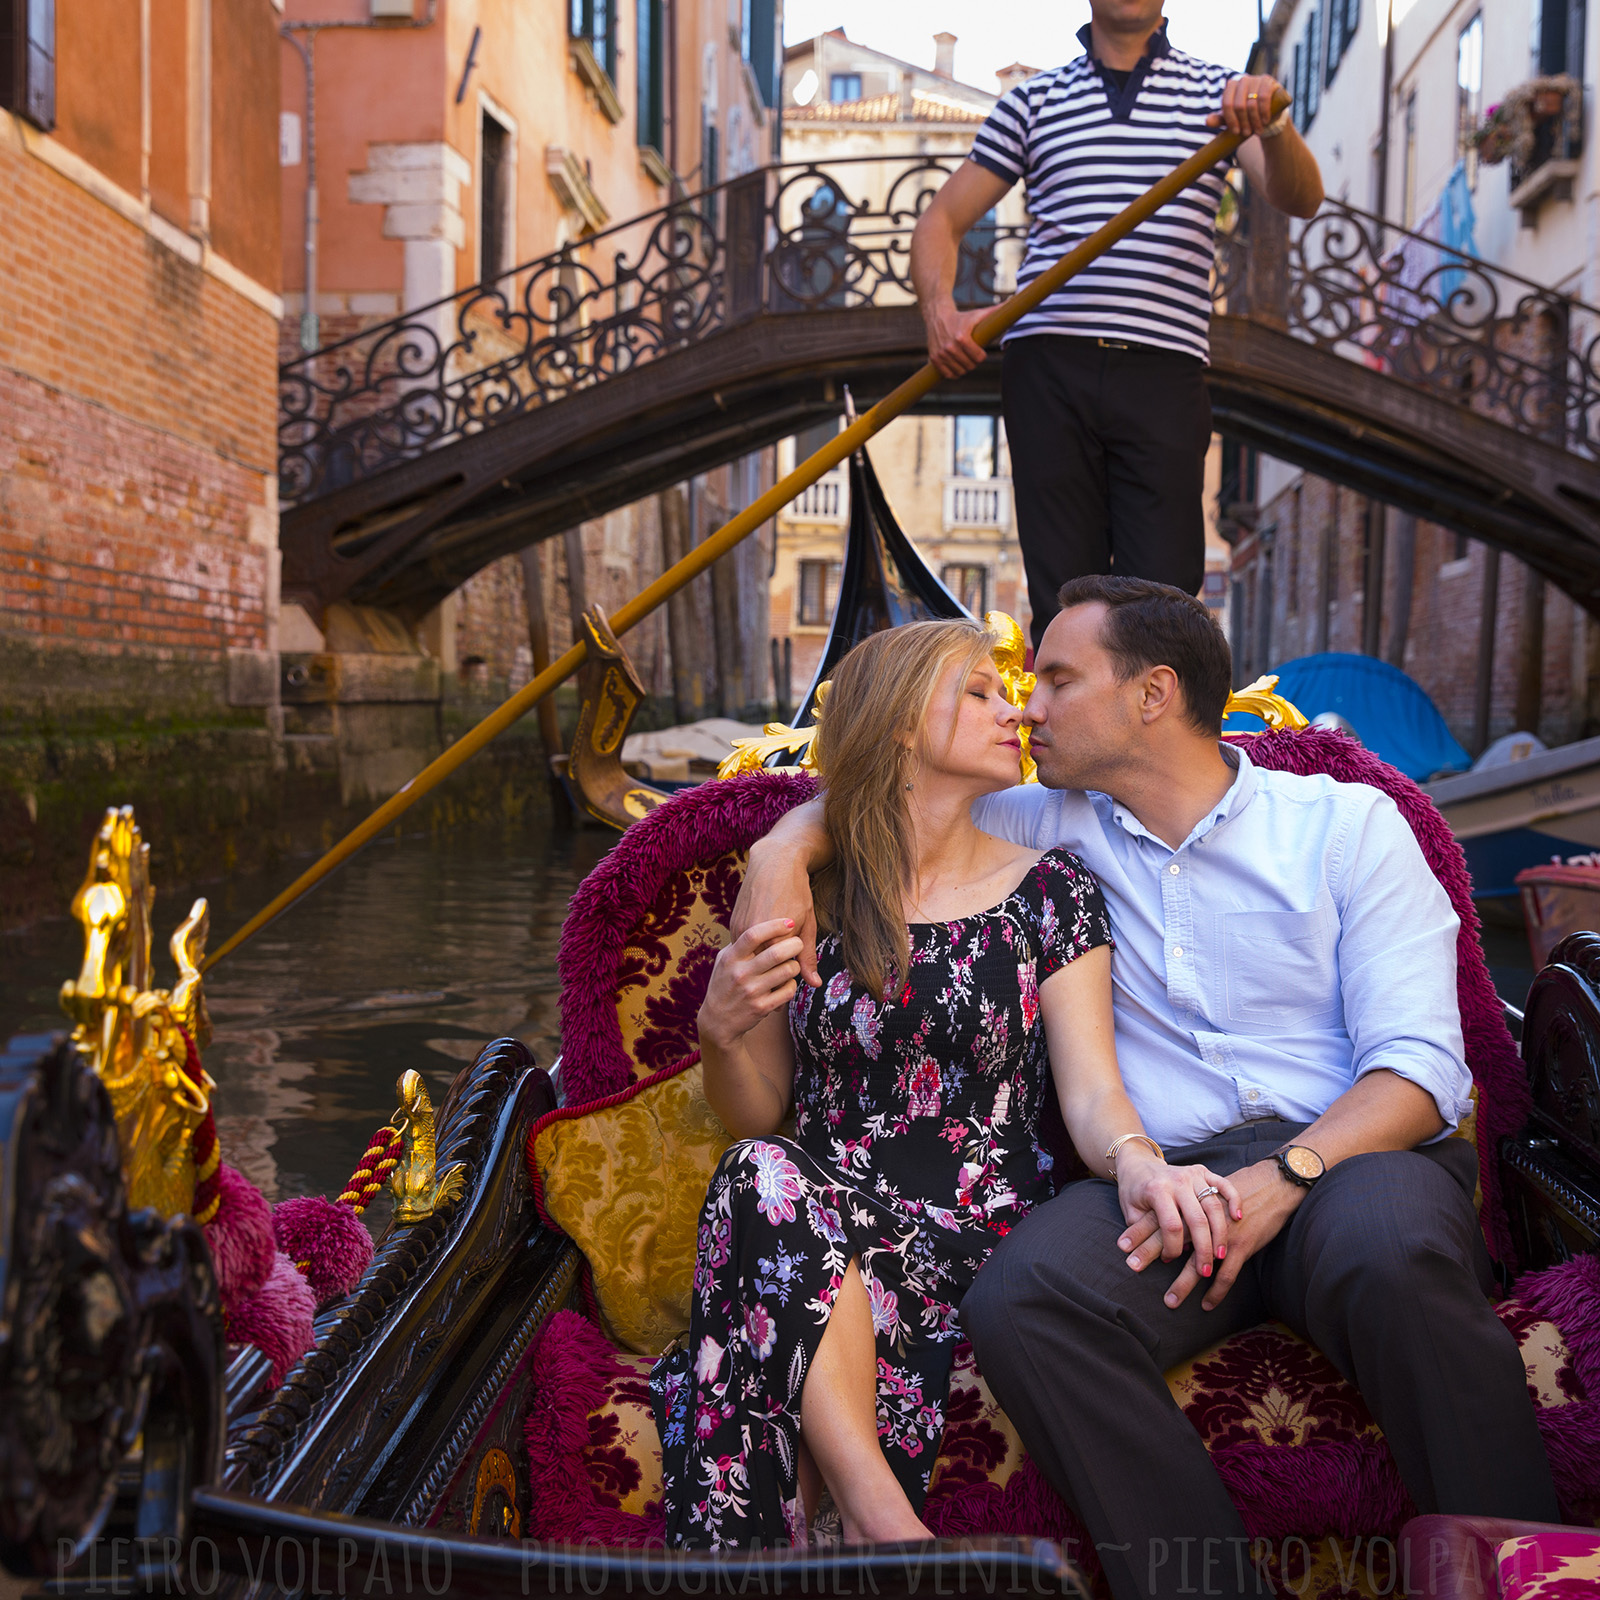 photographer venice italy honeymoon photo session tour